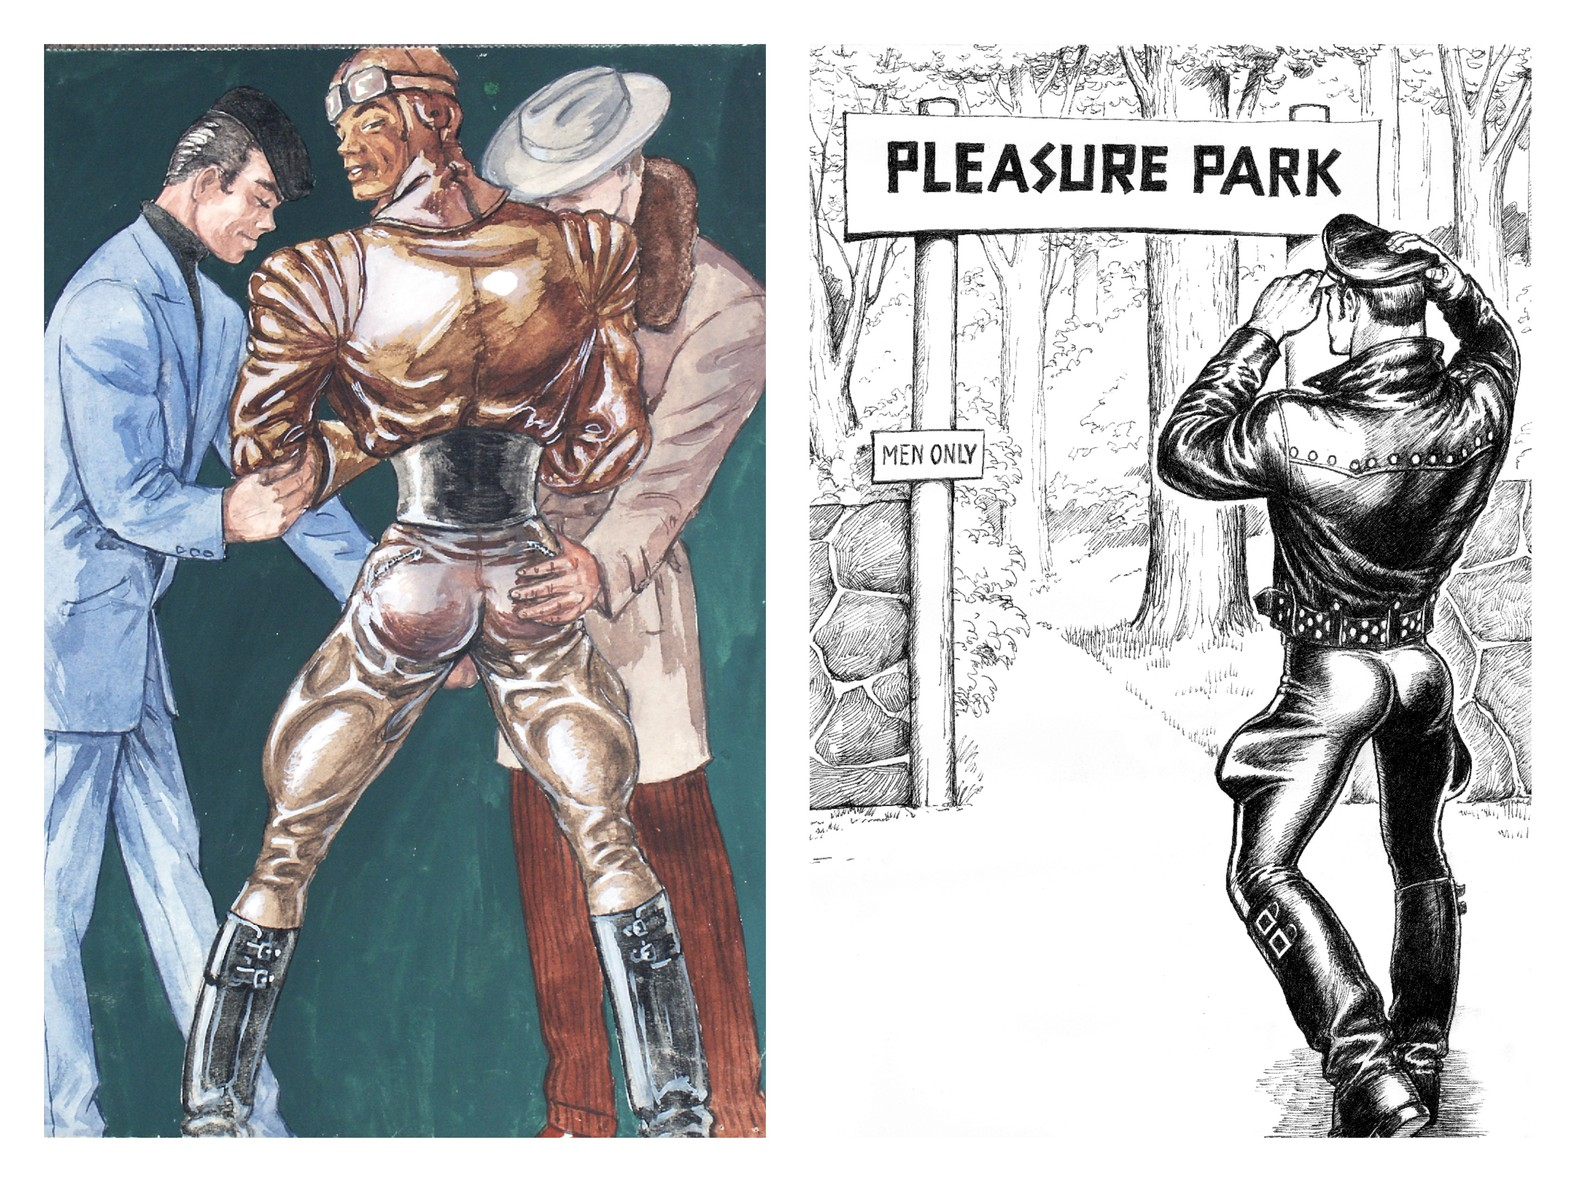 Left: Tom Of Finland, Untitled , 1947. Right: Tom of Finland, Untitled (From Kake vol. 20 - Pleasure Park) , 1977. Courtesy Tom of Finland Foundation and David Kordansky Gallery, Los Angeles, California